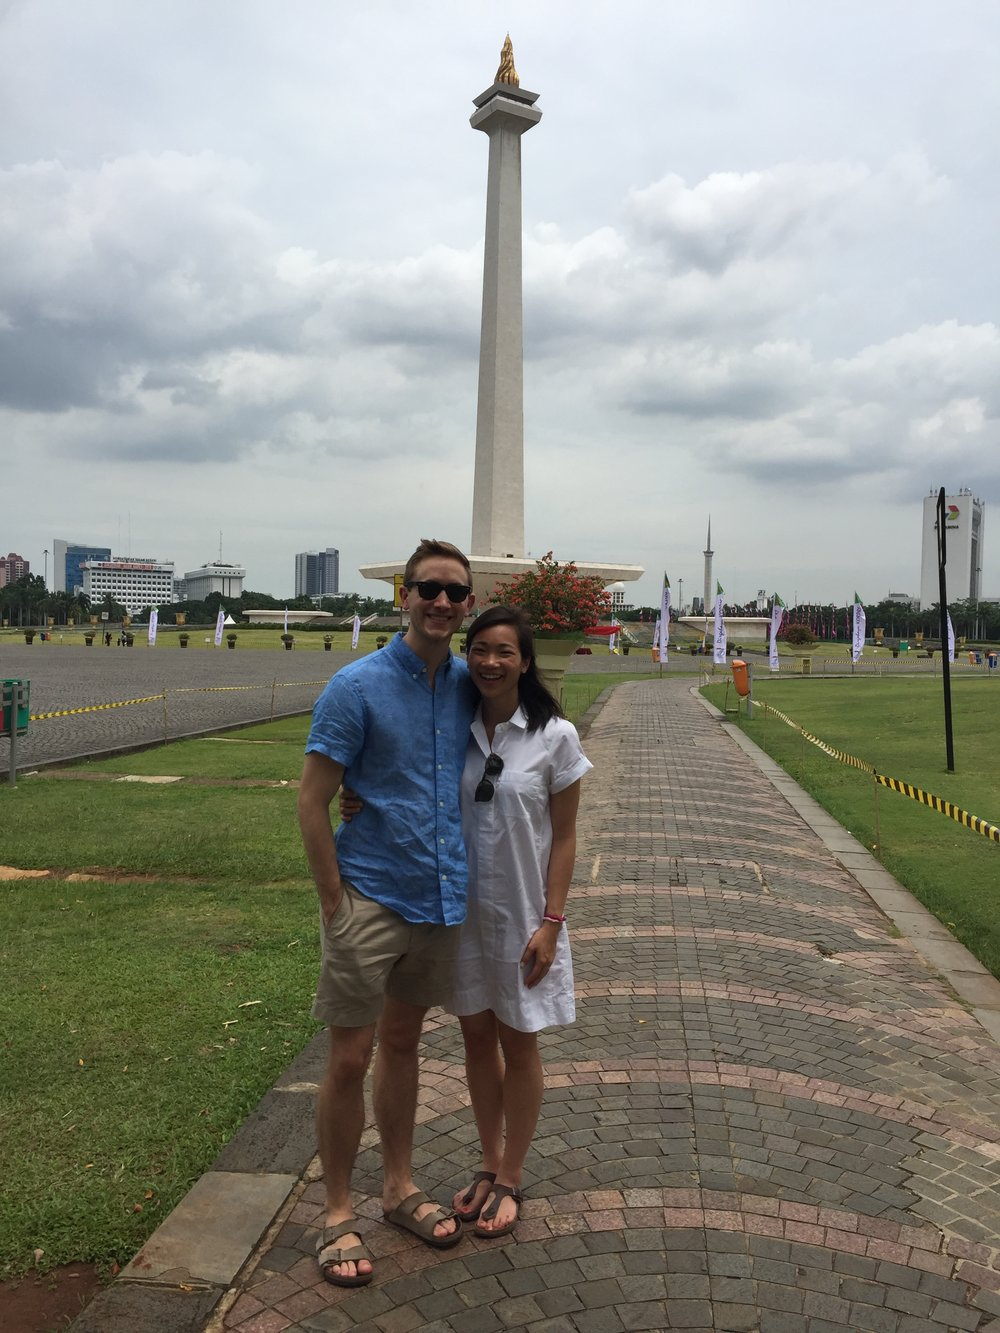 At the Indonesian National Monument